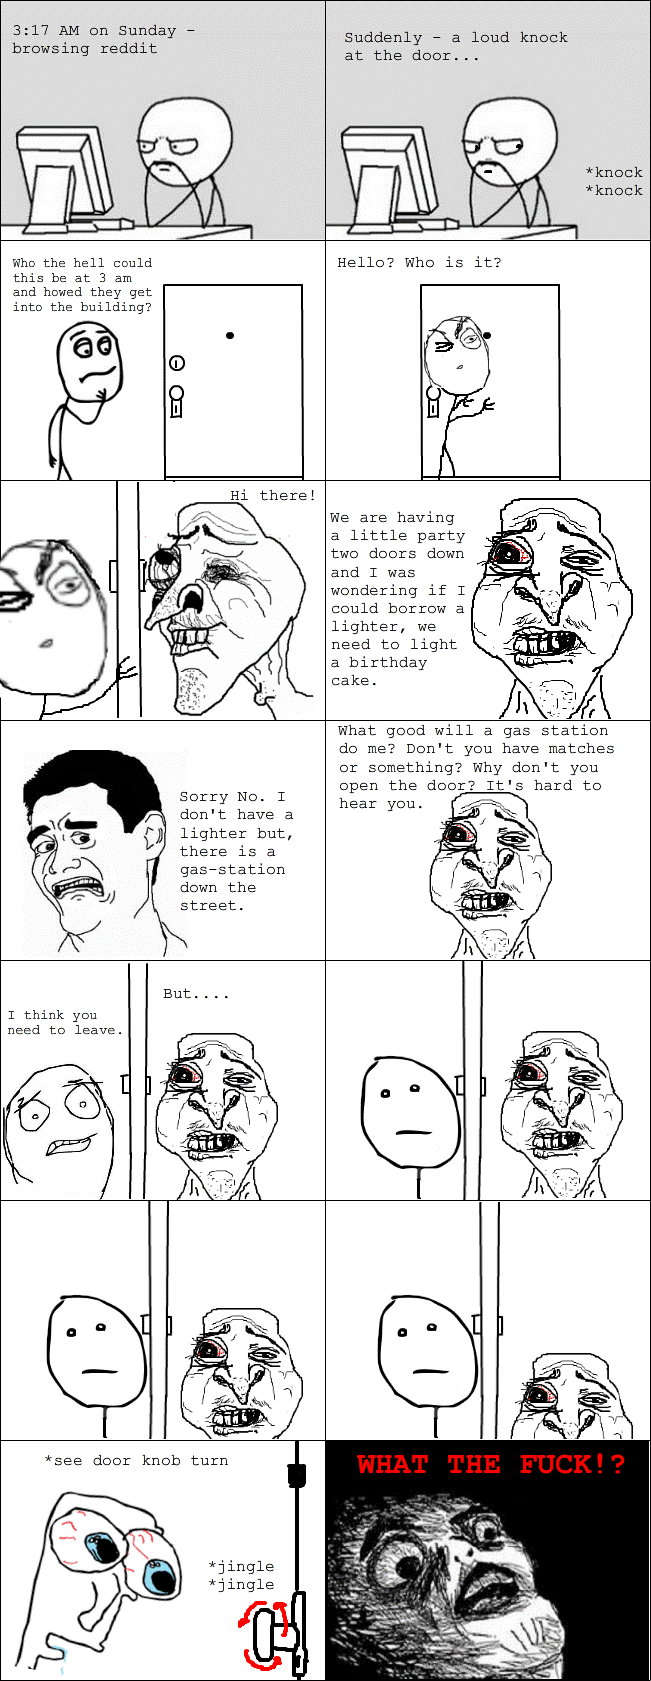 rage comic creepy neighbors The Six WTFiest Rage Cartoons